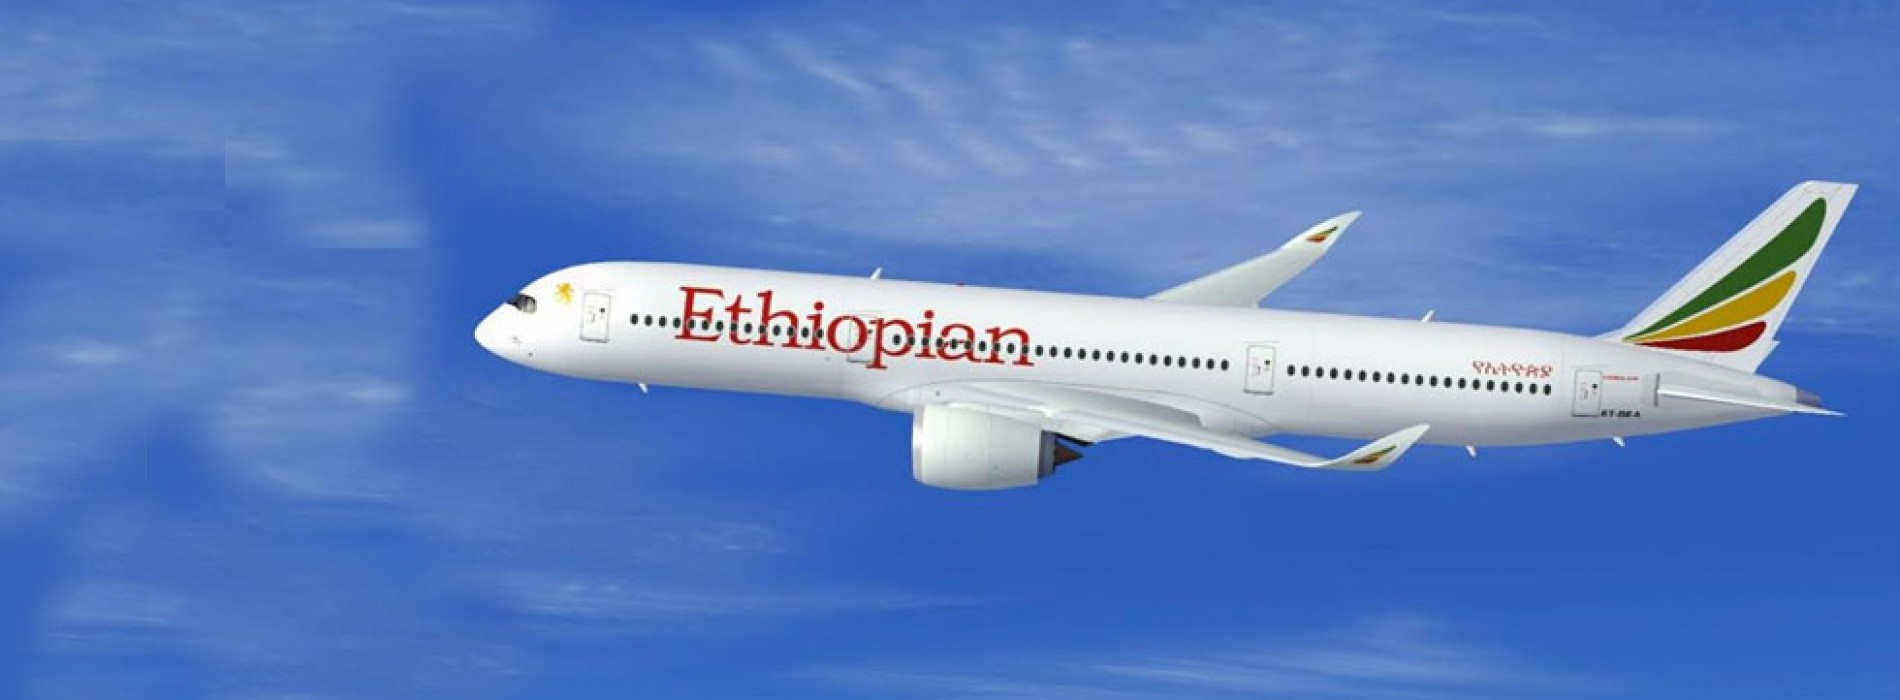 Ethiopian Airlines offers great connectivity to Addis Ababa